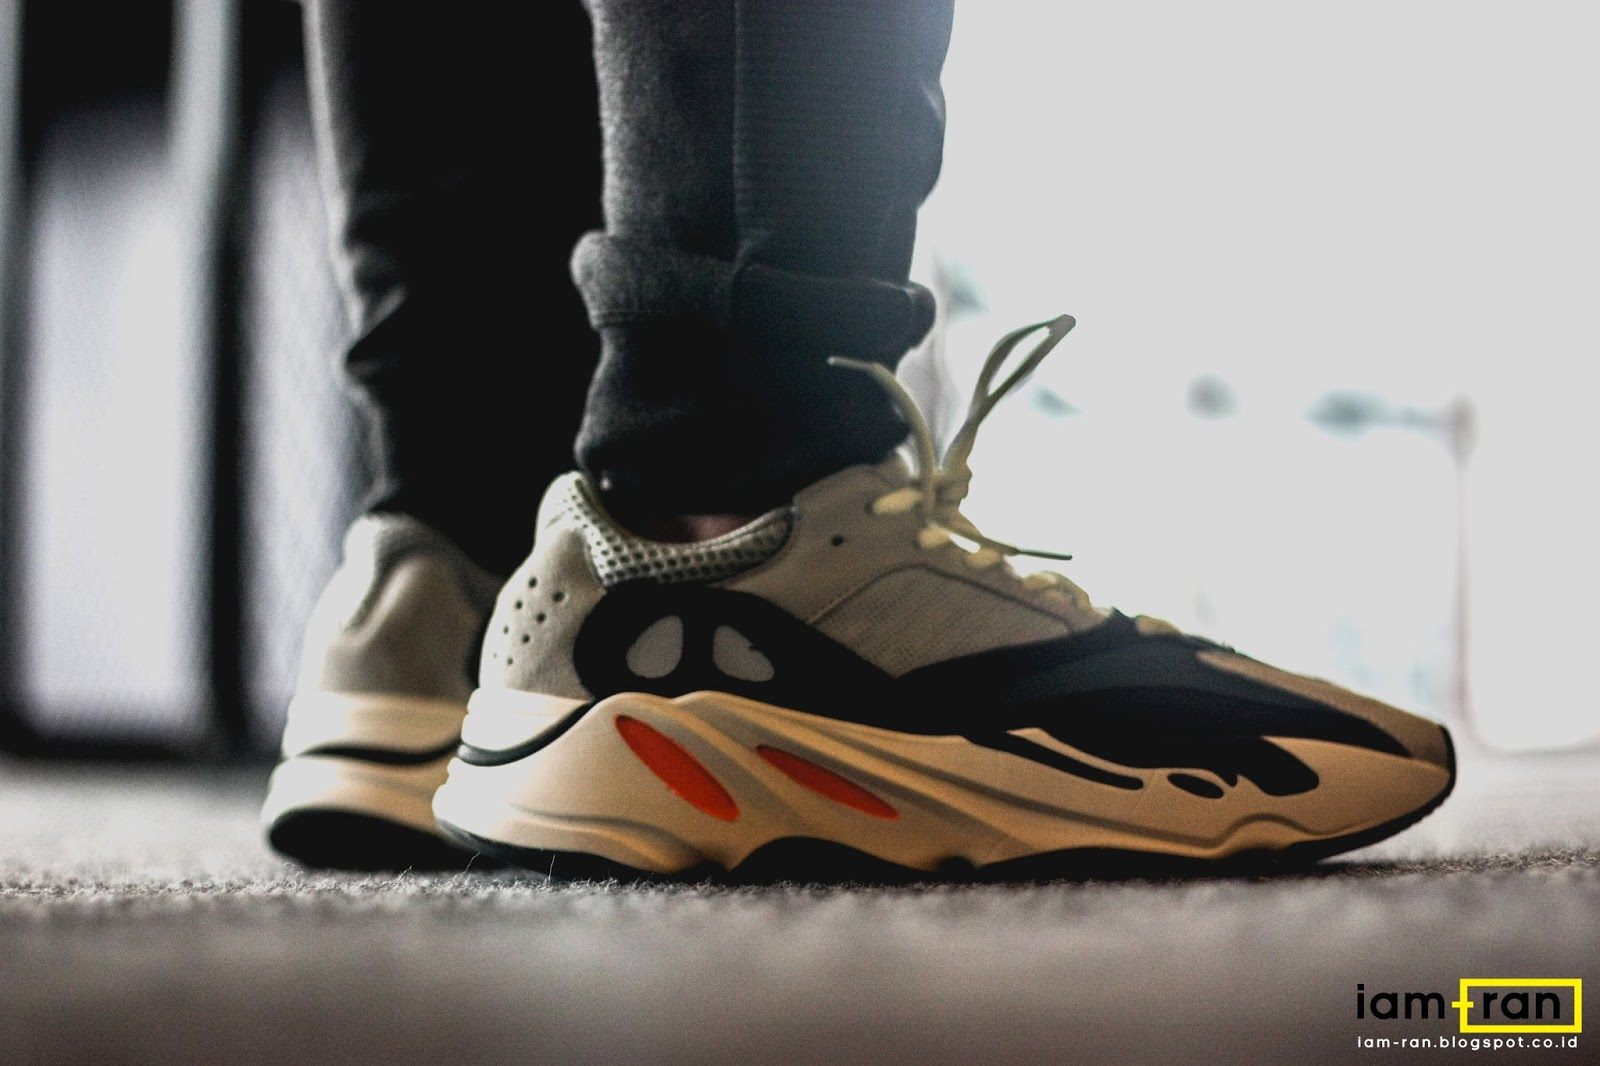 c80f76207e7eb Sneakers   Adidas Yeezy Boost 700